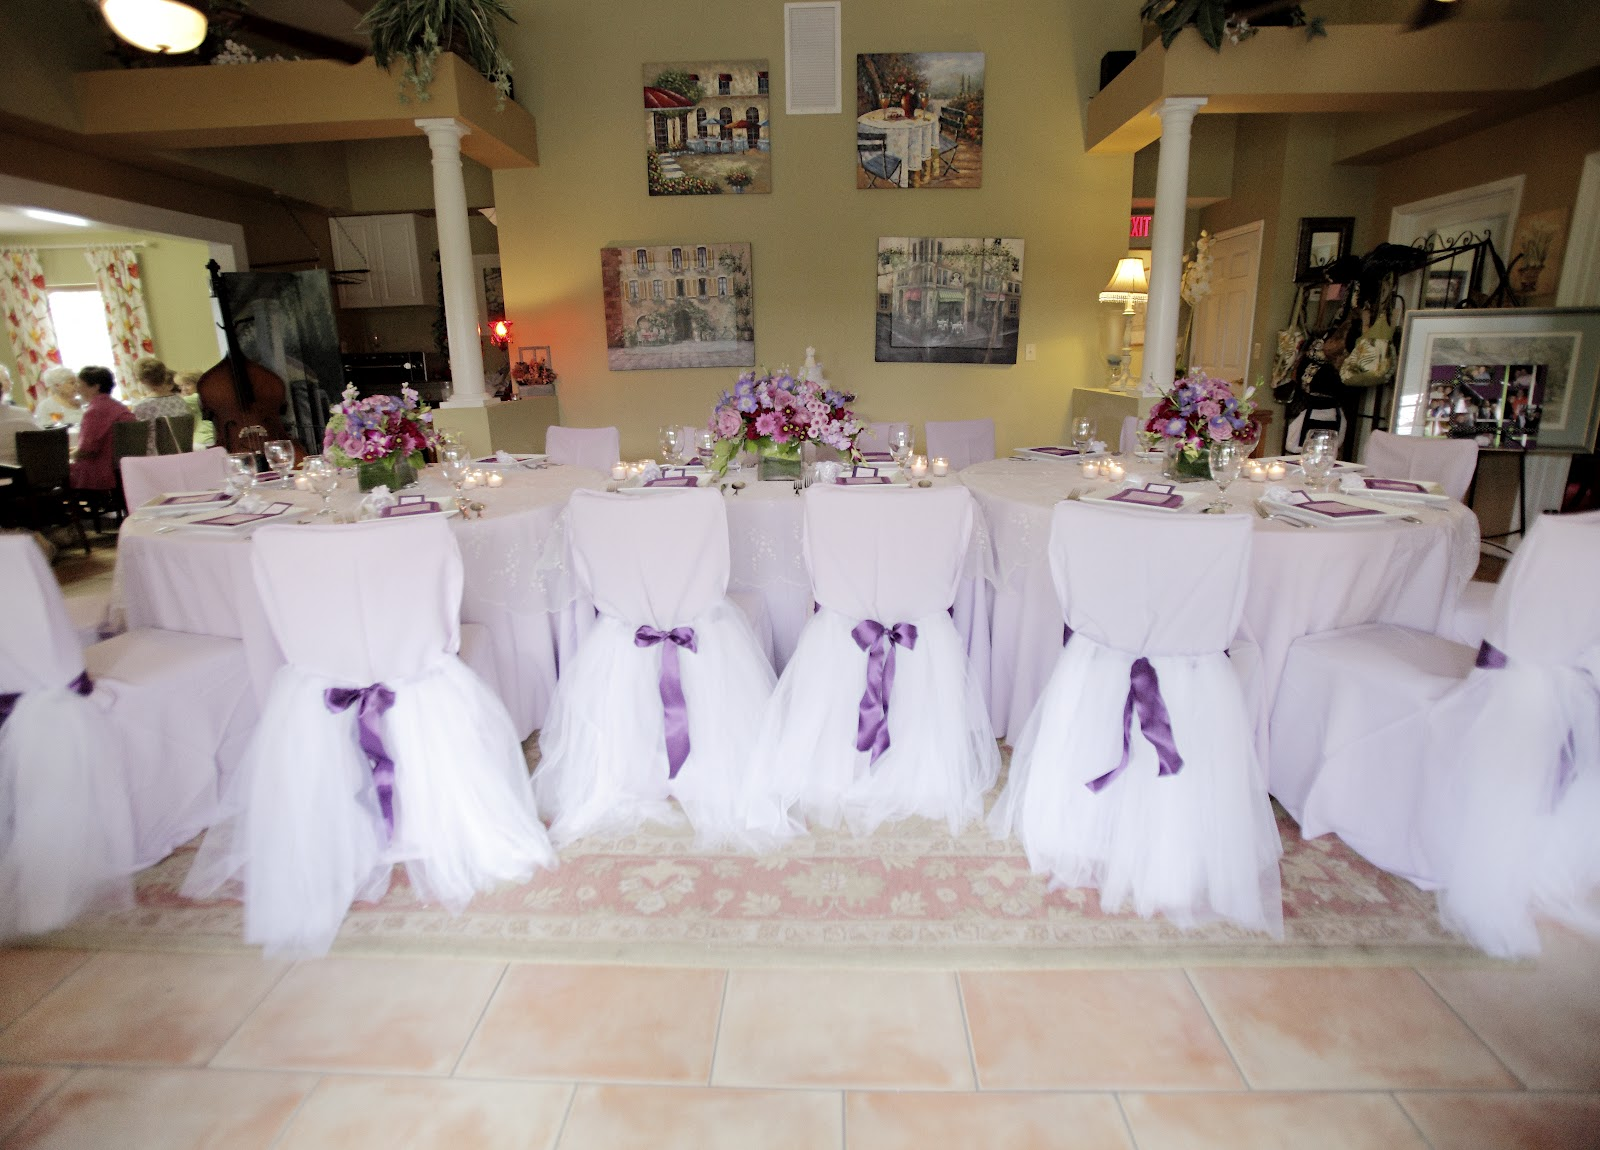 Kelly McWilliams: A Pretty little purple bridal shower luncheon